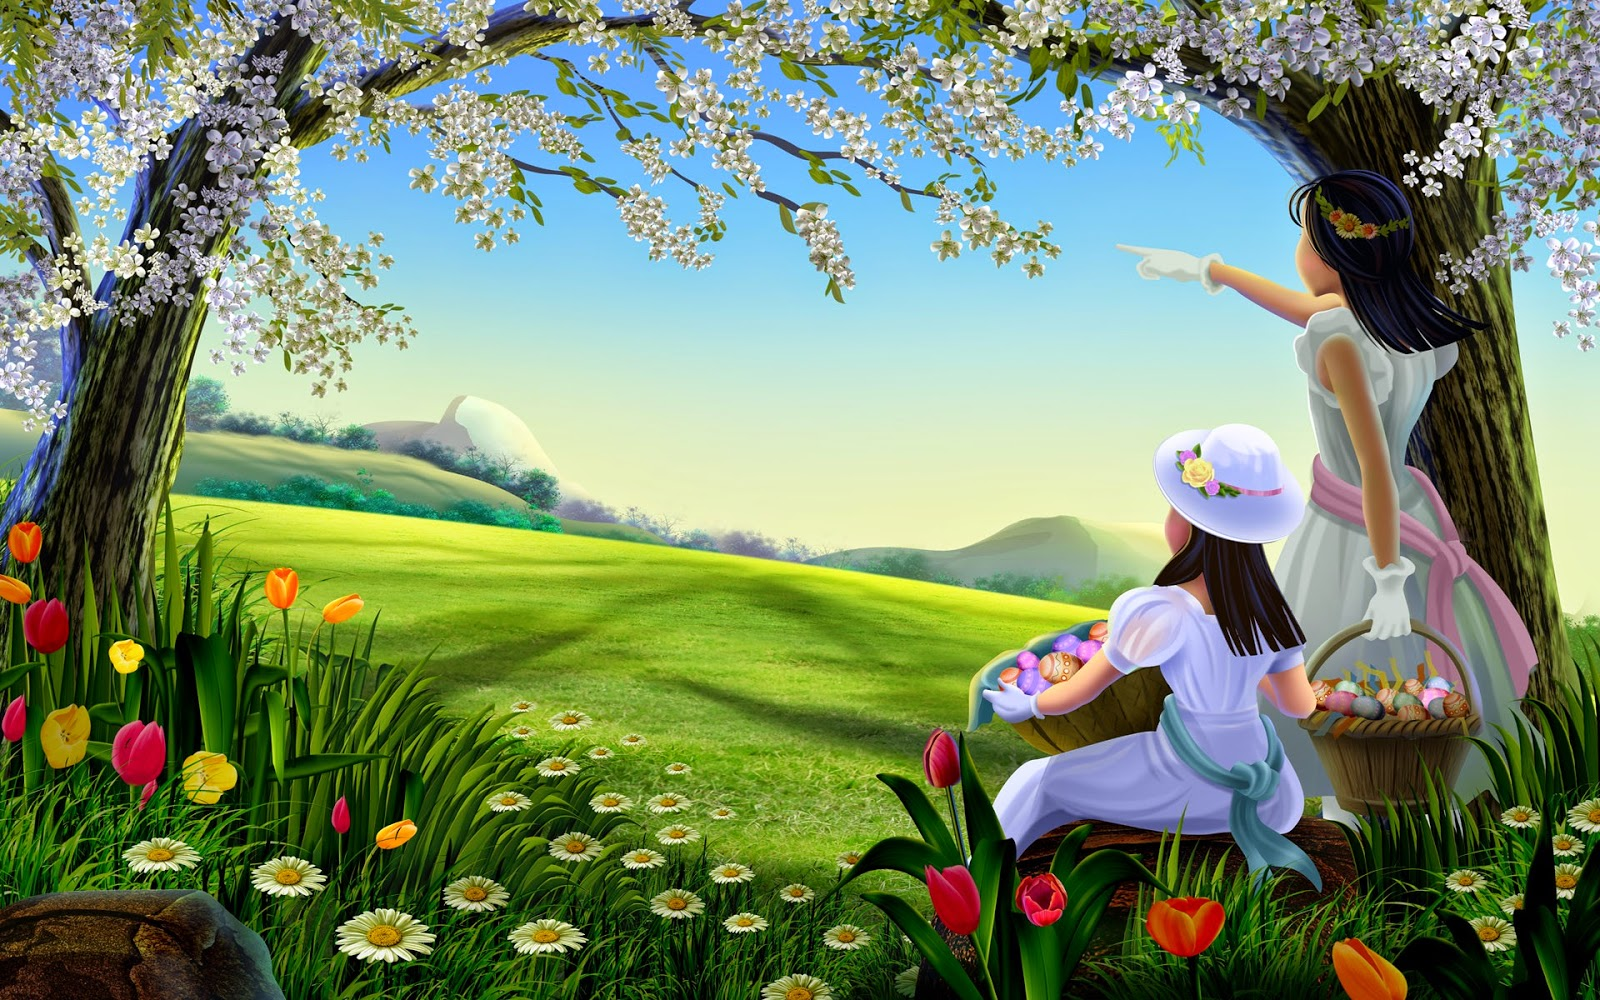 Happy easter 2015 easter wishes 2015 easter 2015 images vatican easter 2015 images vatican mass the easter bunny happy easter day quotes easter quotes poems m4hsunfo